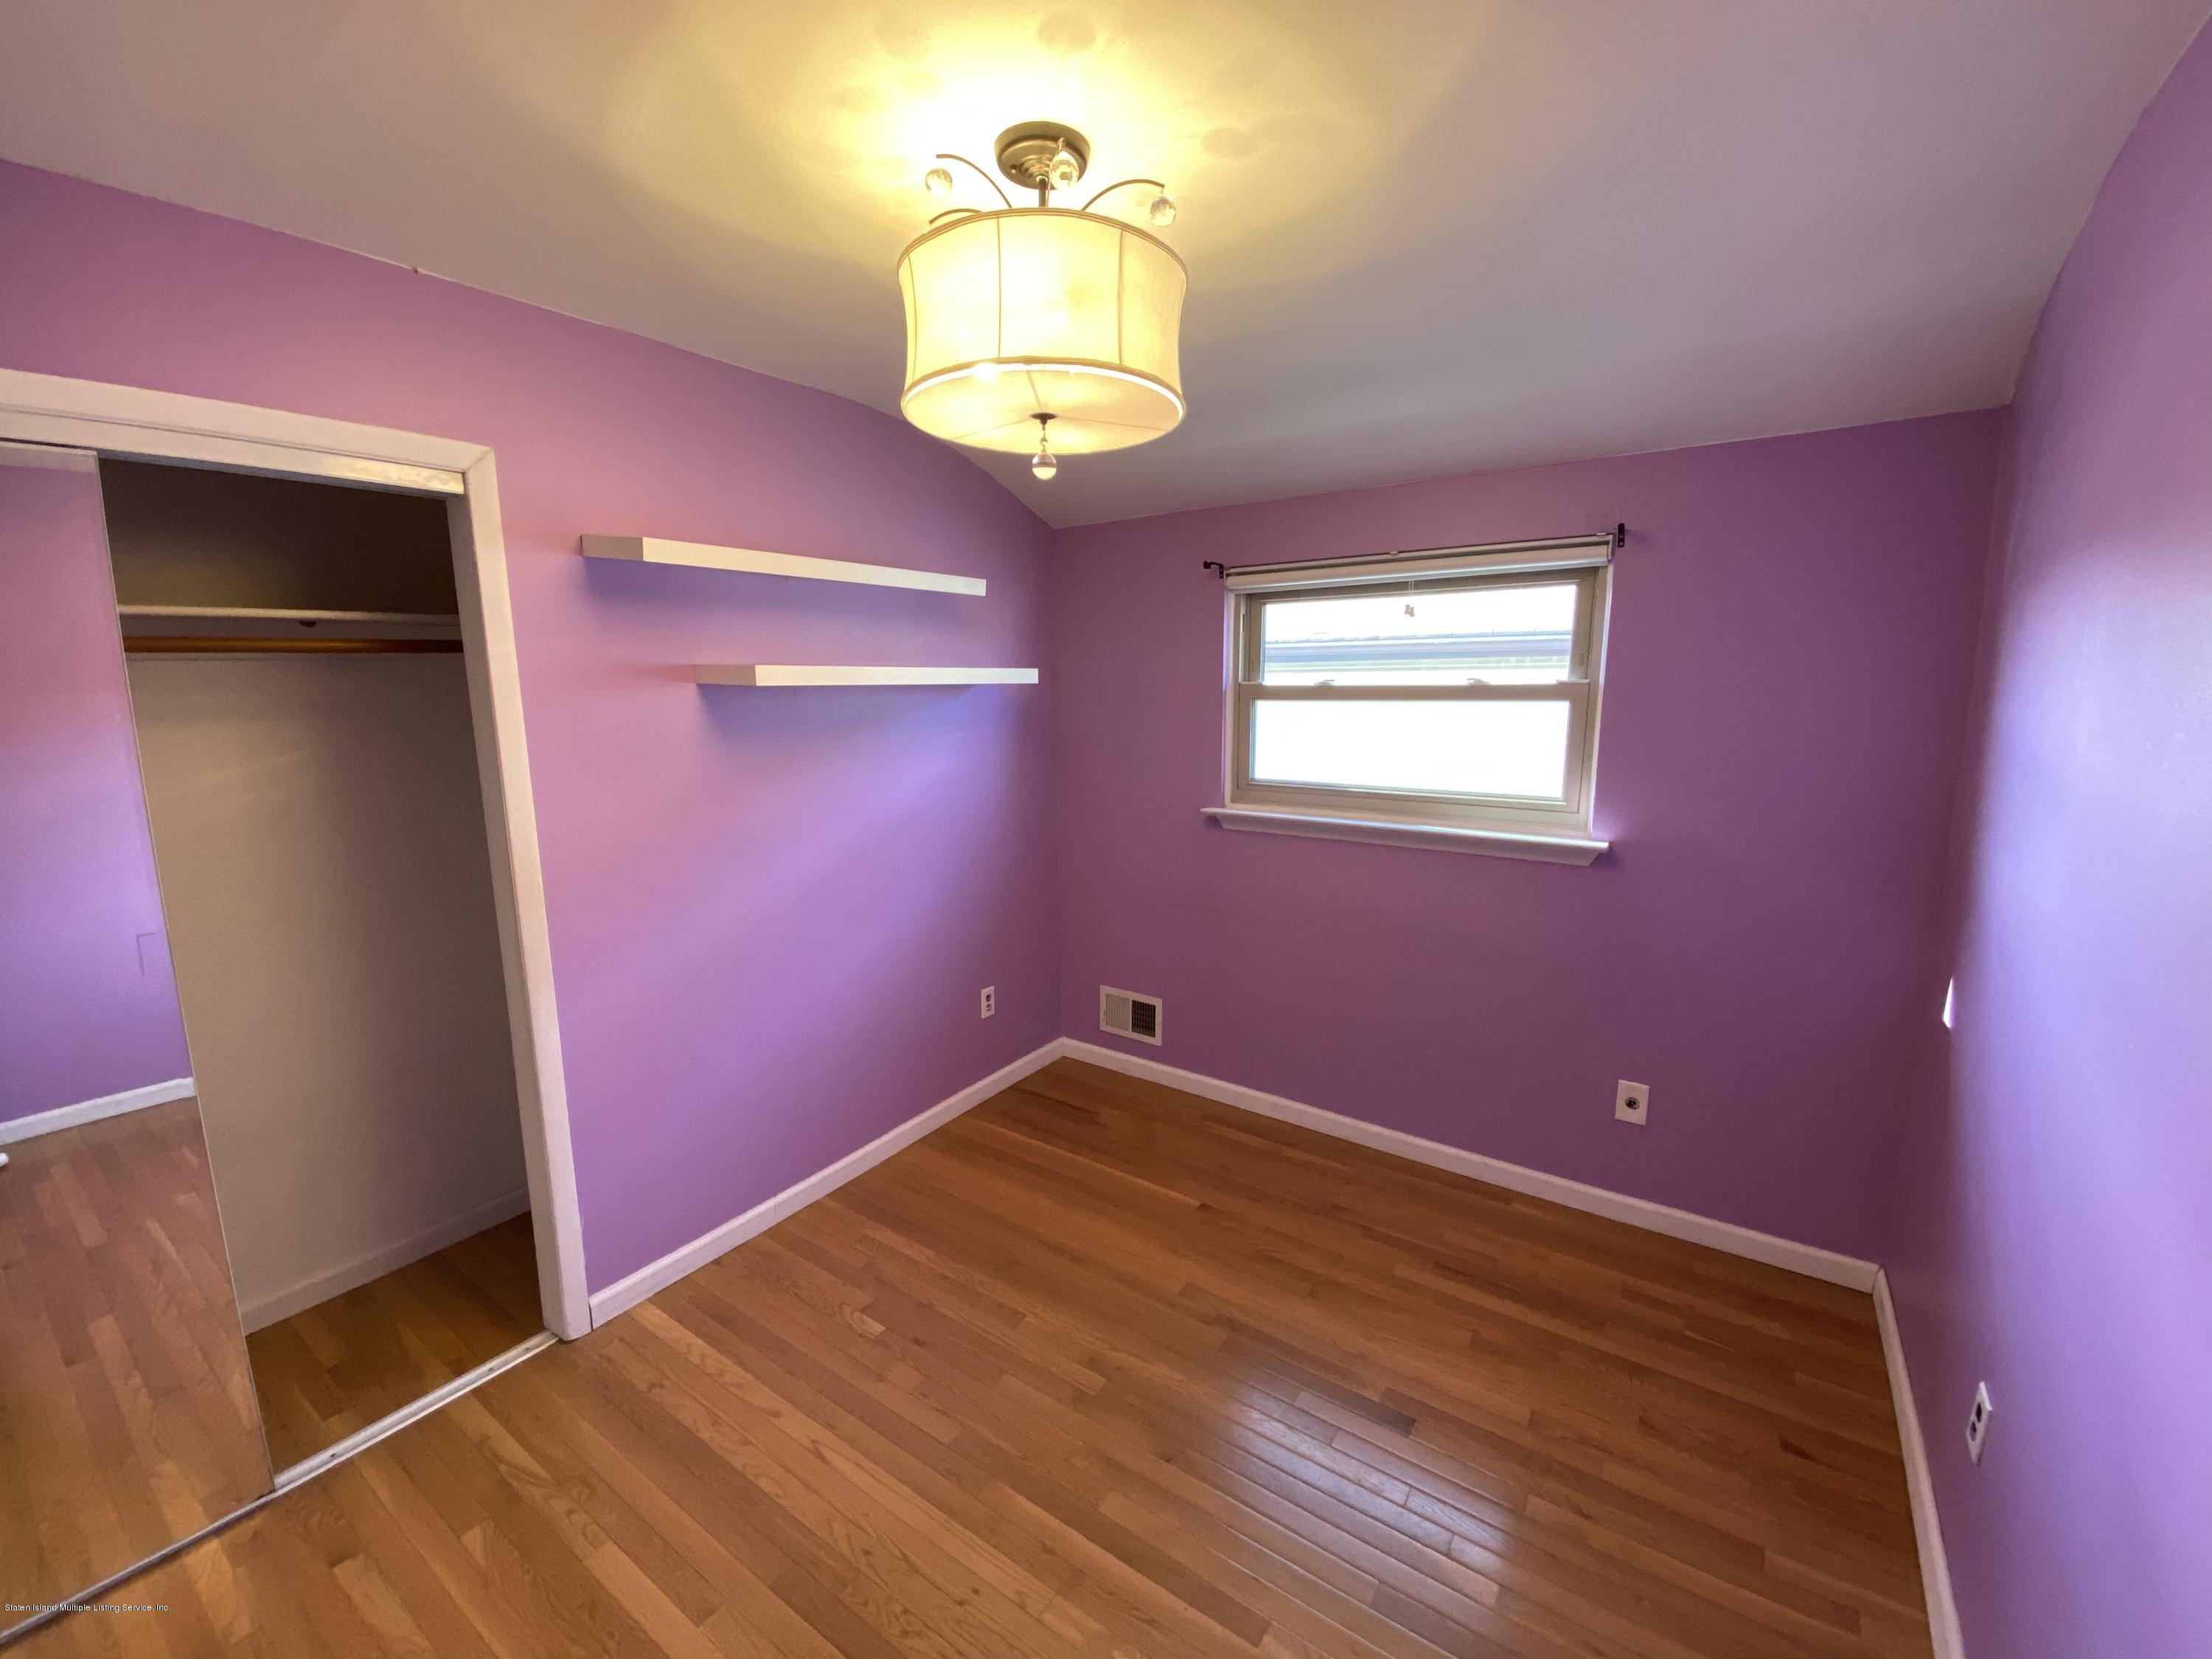 Single Family - Attached 118 Braisted Avenue  Staten Island, NY 10314, MLS-1135869-10